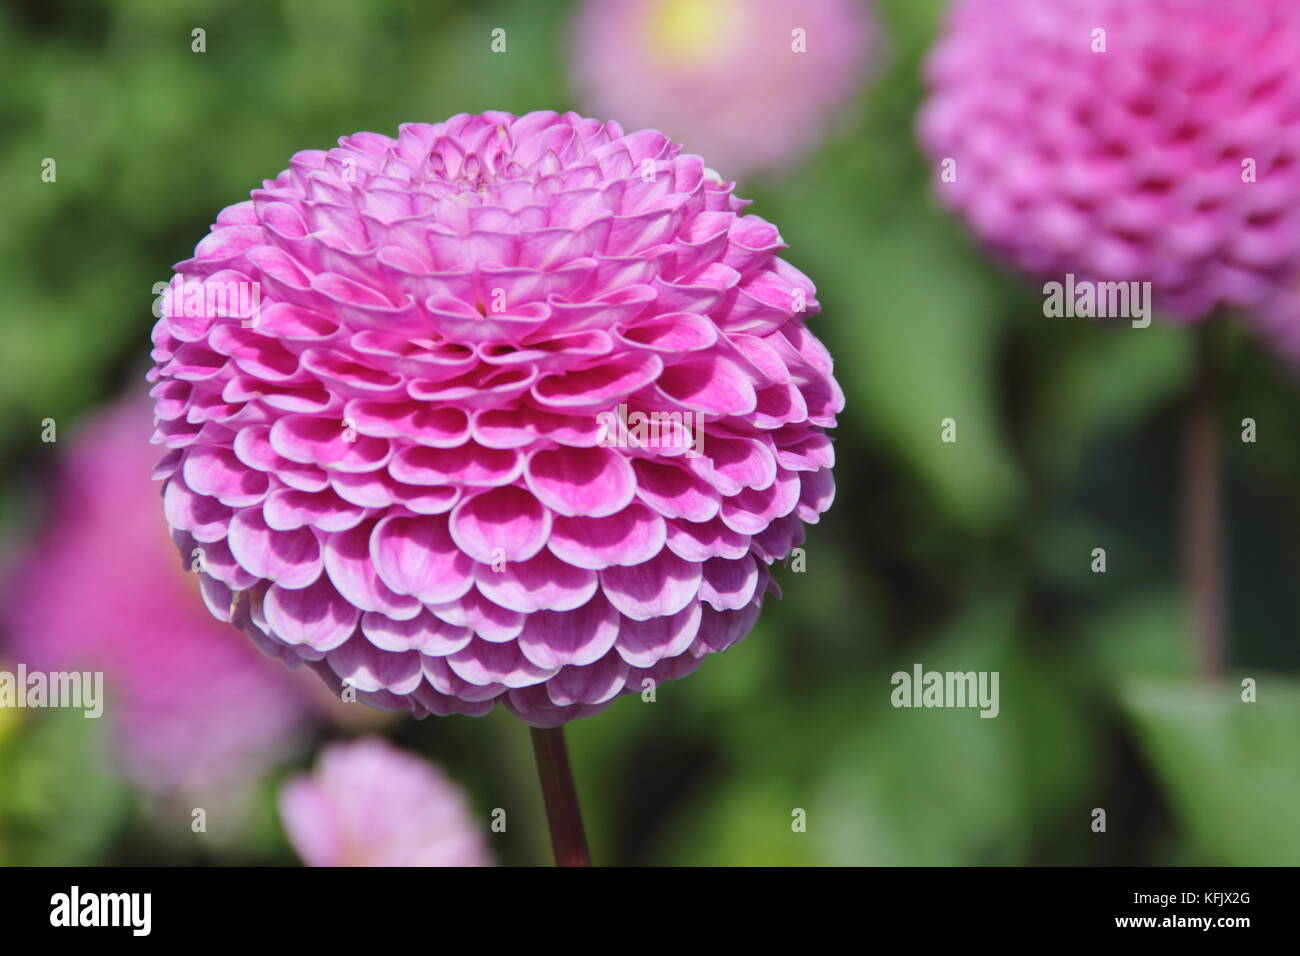 Dahlia 'Wizard of Oz', a pompom dahlia, blooming in an English garden border in summer (August), UK - Stock Image